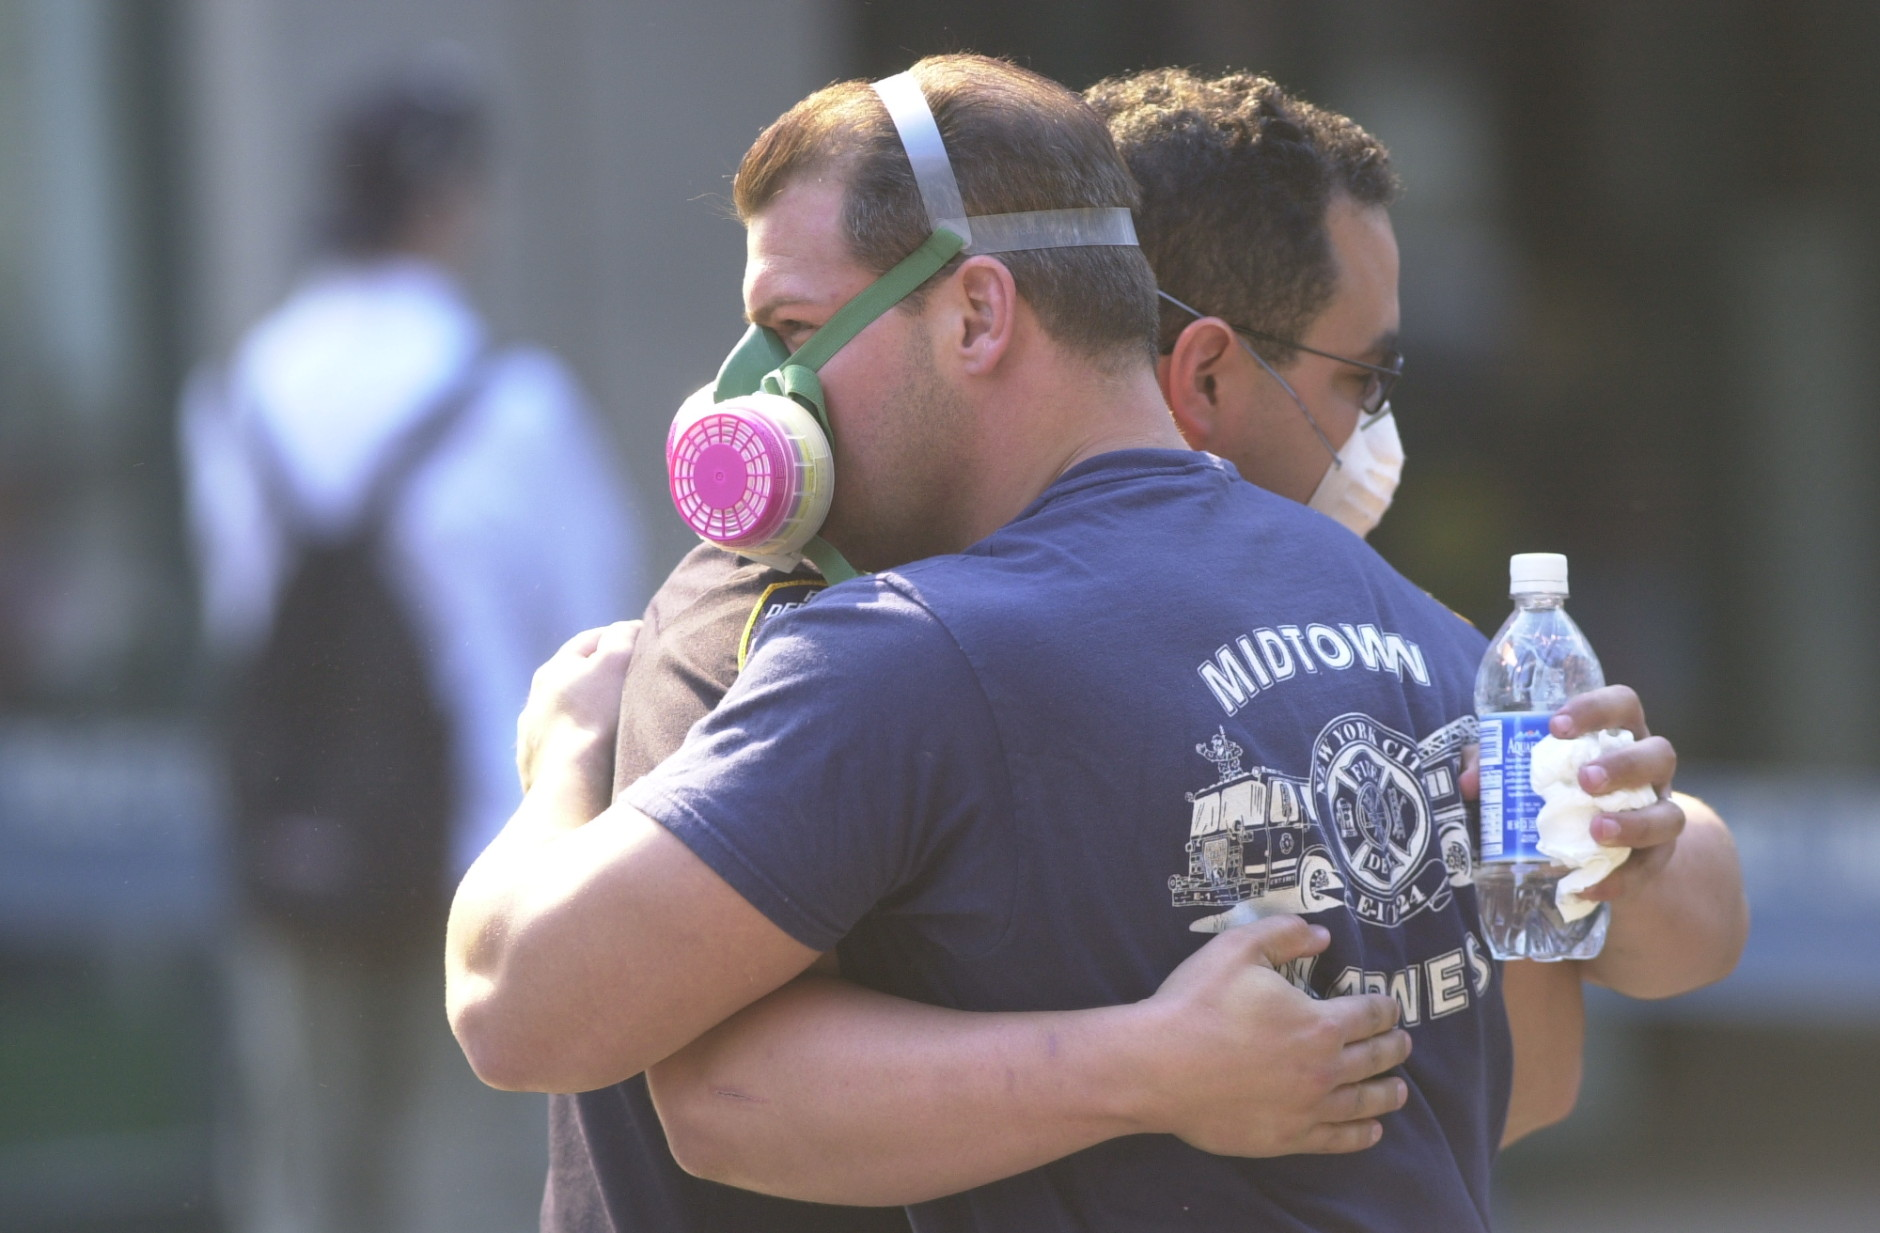 Two ground zero emergency workers hug on Sept. 13, 2001 after the September 11 terrorist attacks on the World Trade Center in New York City.(AP Photo/Lawrence Jackson)